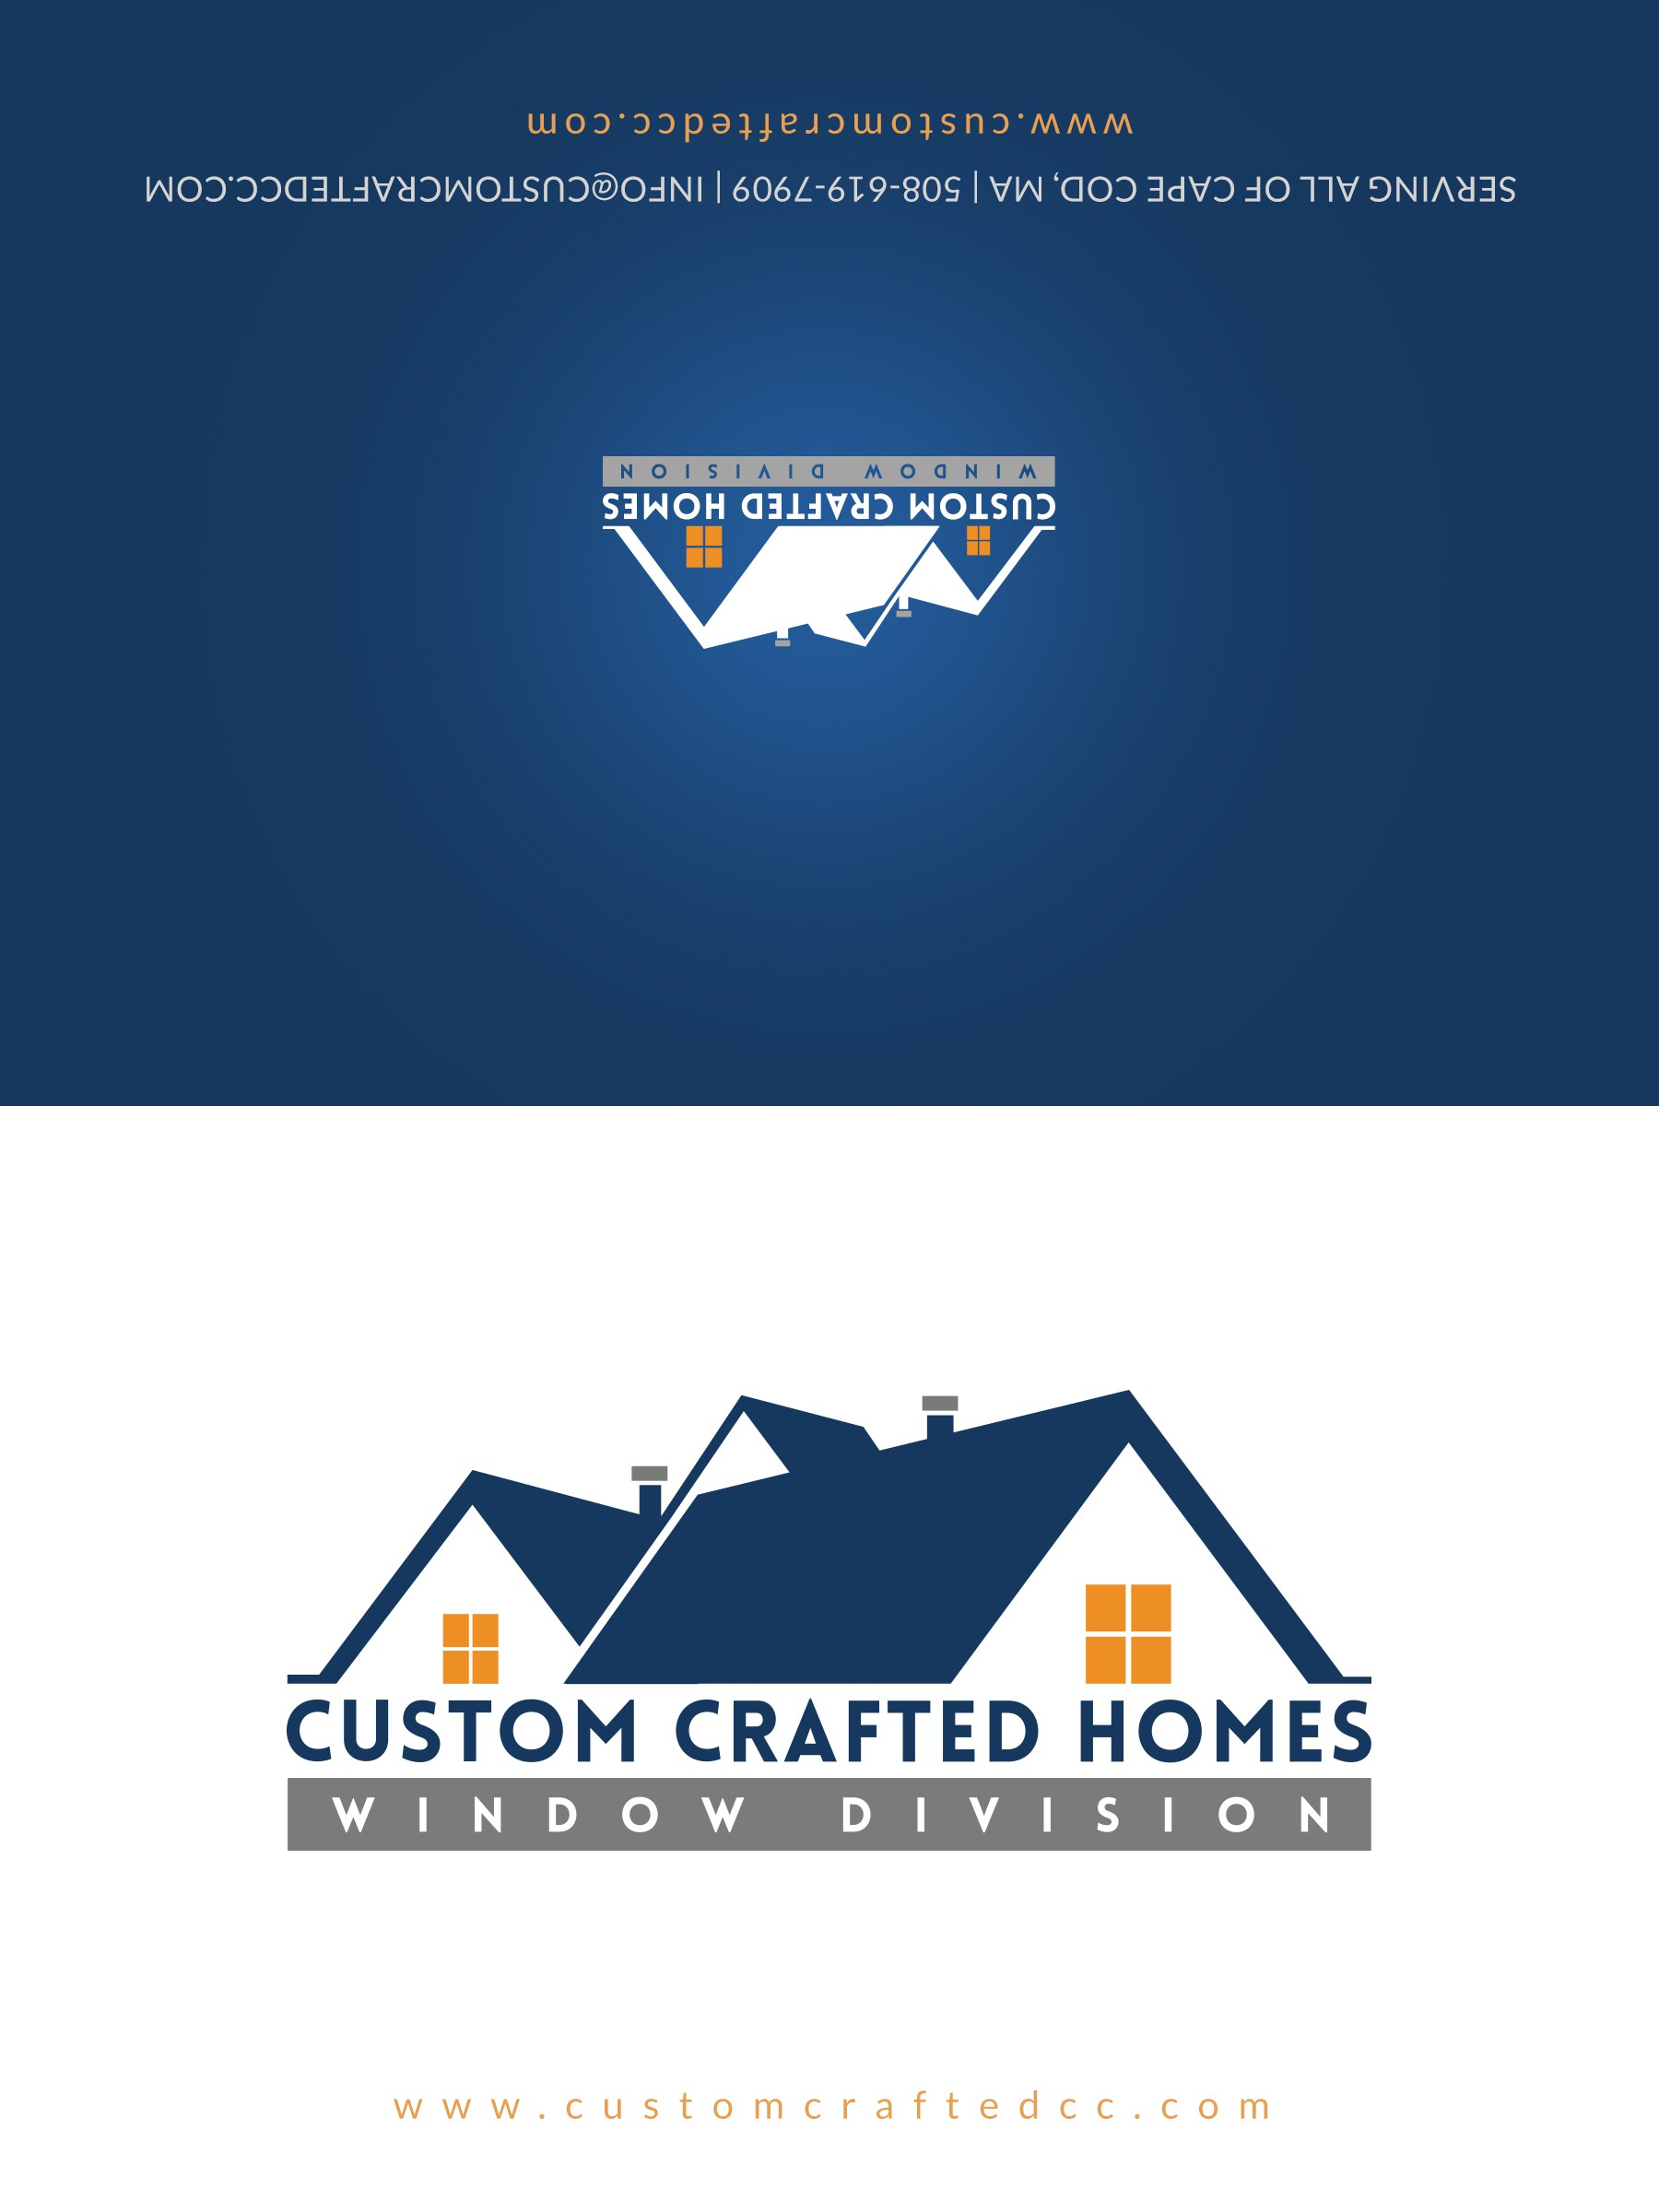 Modify and Re-Design Current Logo To Create Sub Division Marketing materials